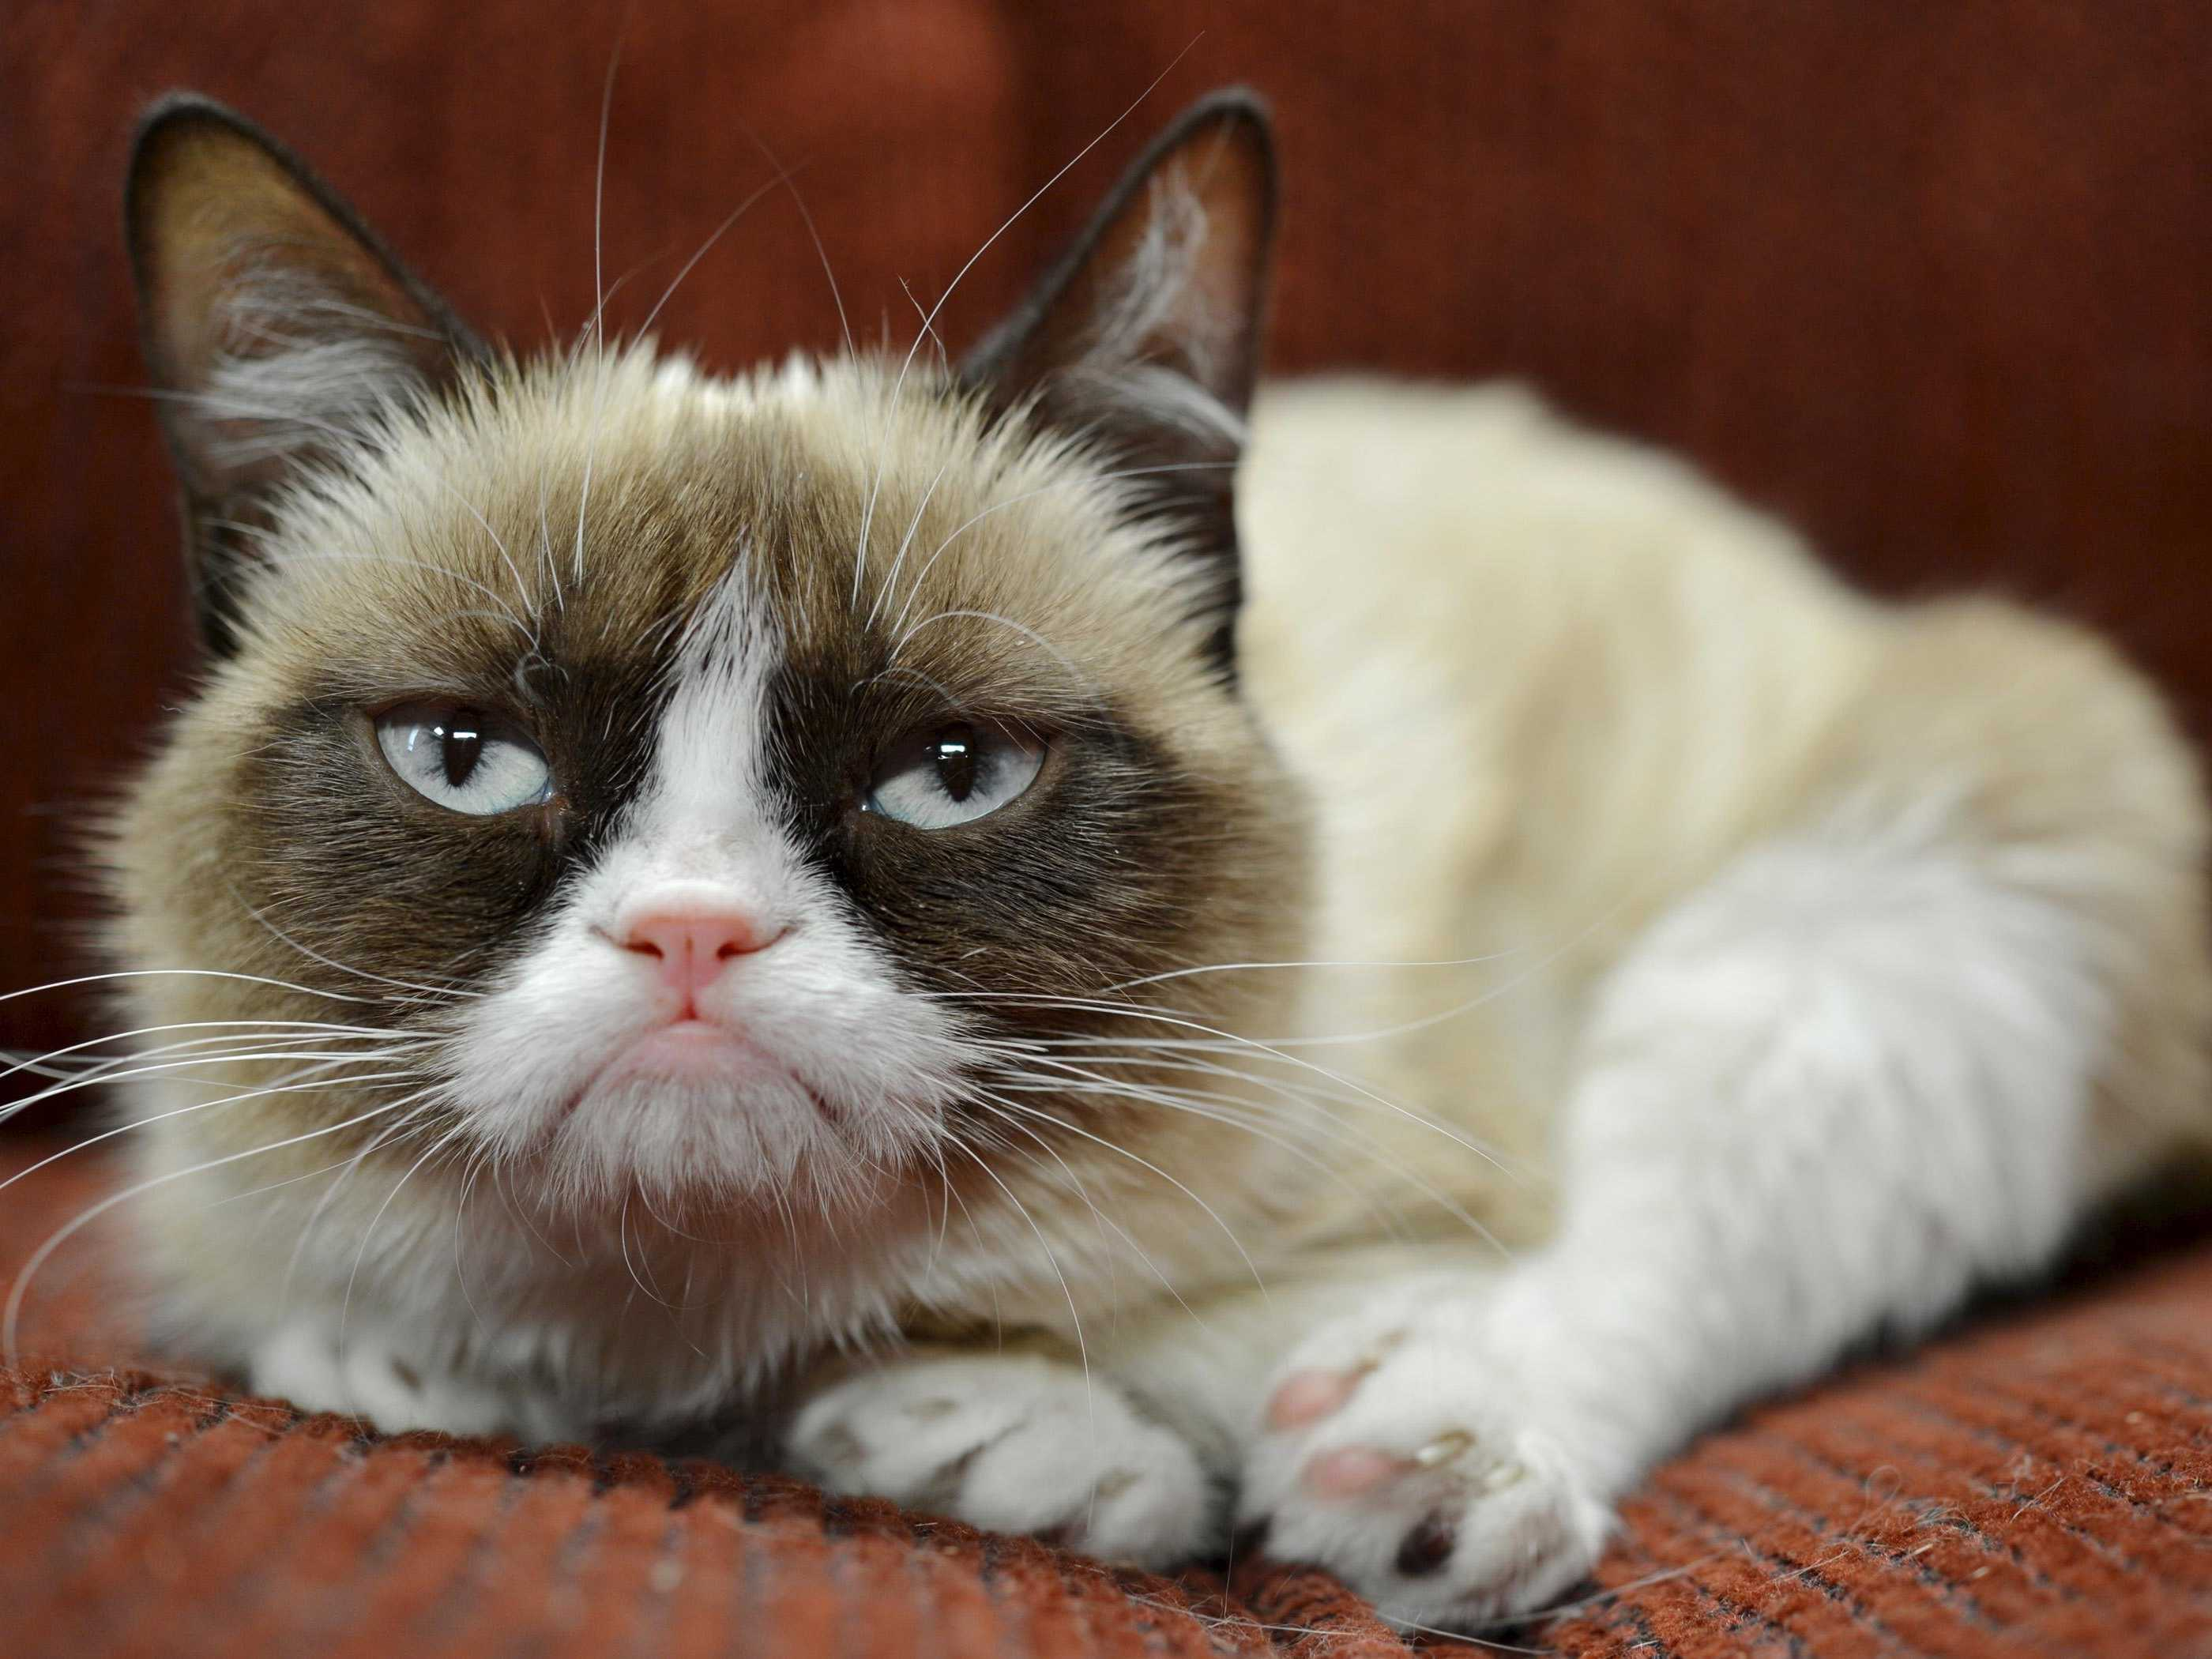 Researchers Have Some Good News For People Who Hate Everything grumpy cat has earned her owner nearly 100 million in just 2 years